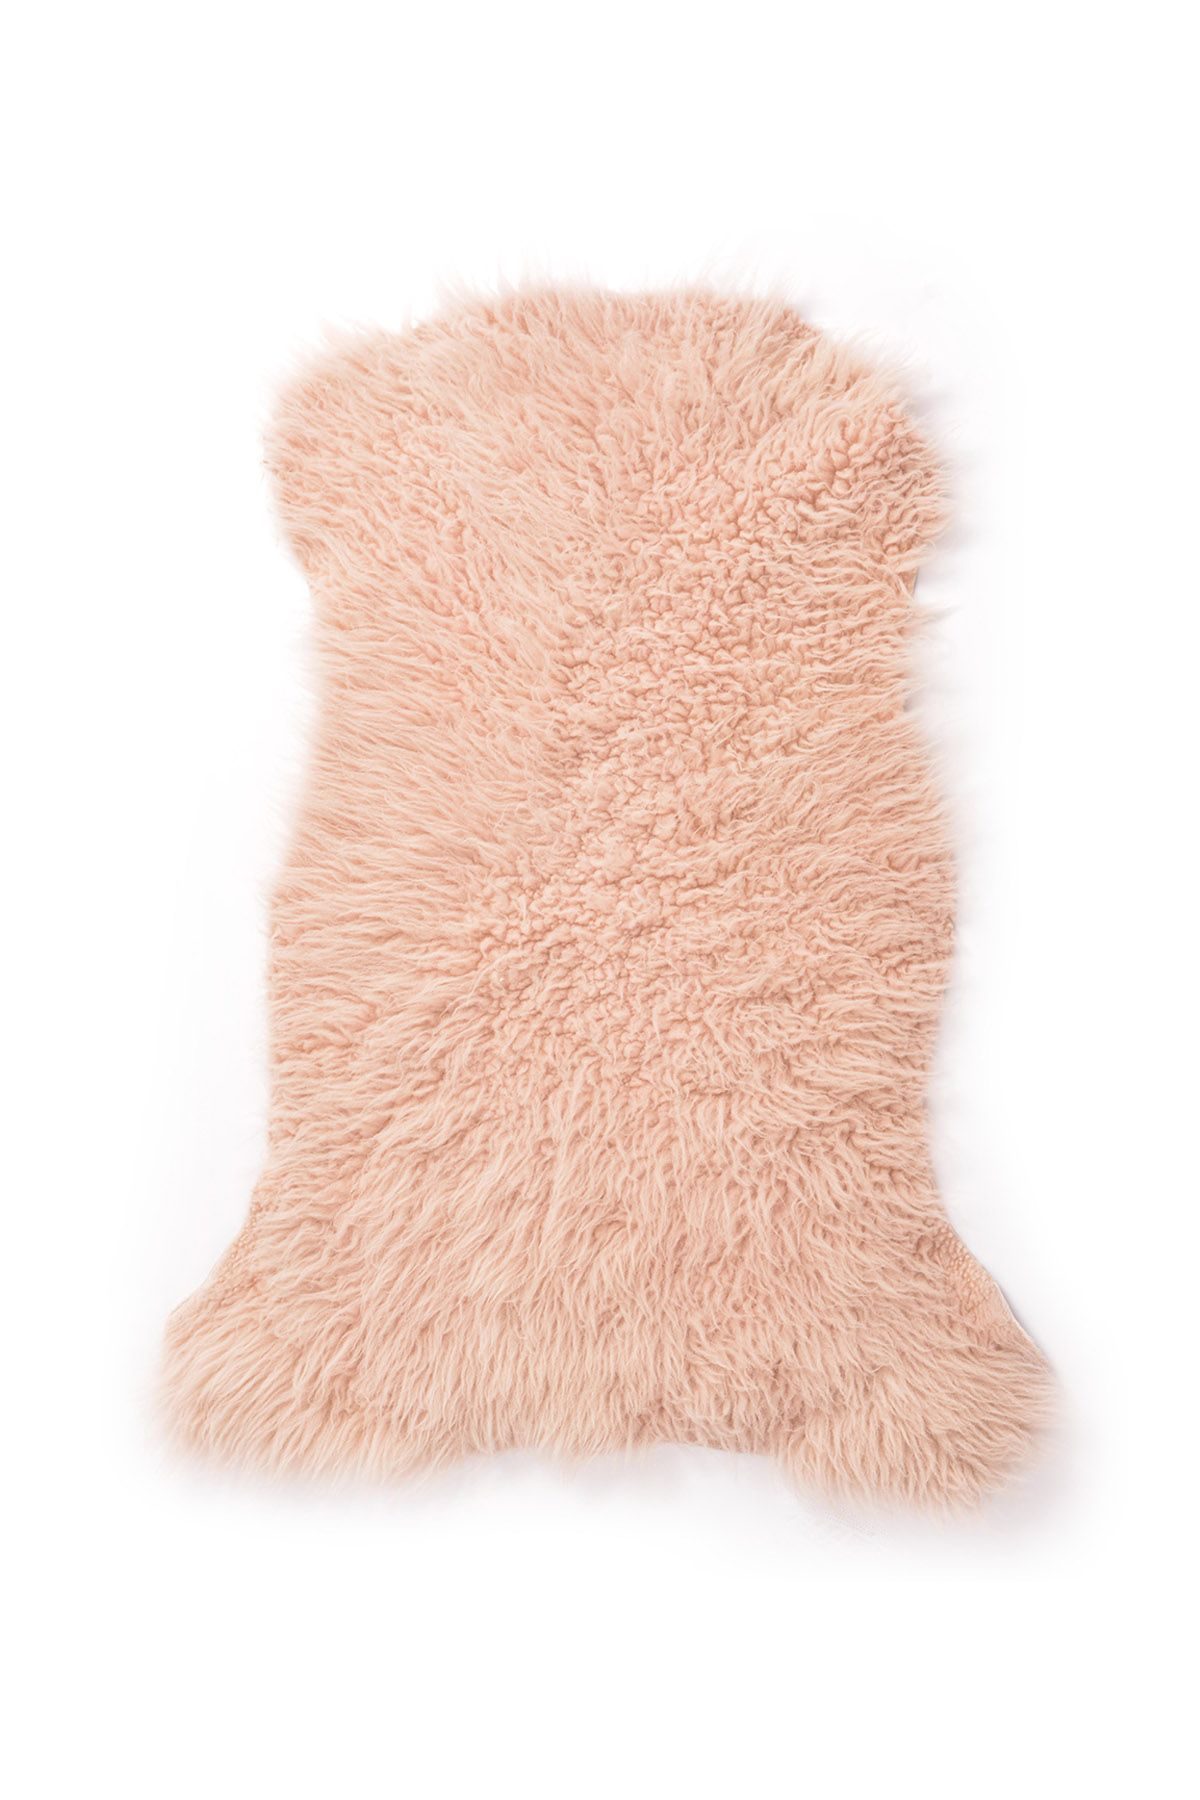 Erdogan Deri Decorative Sheepskin Rug Pink